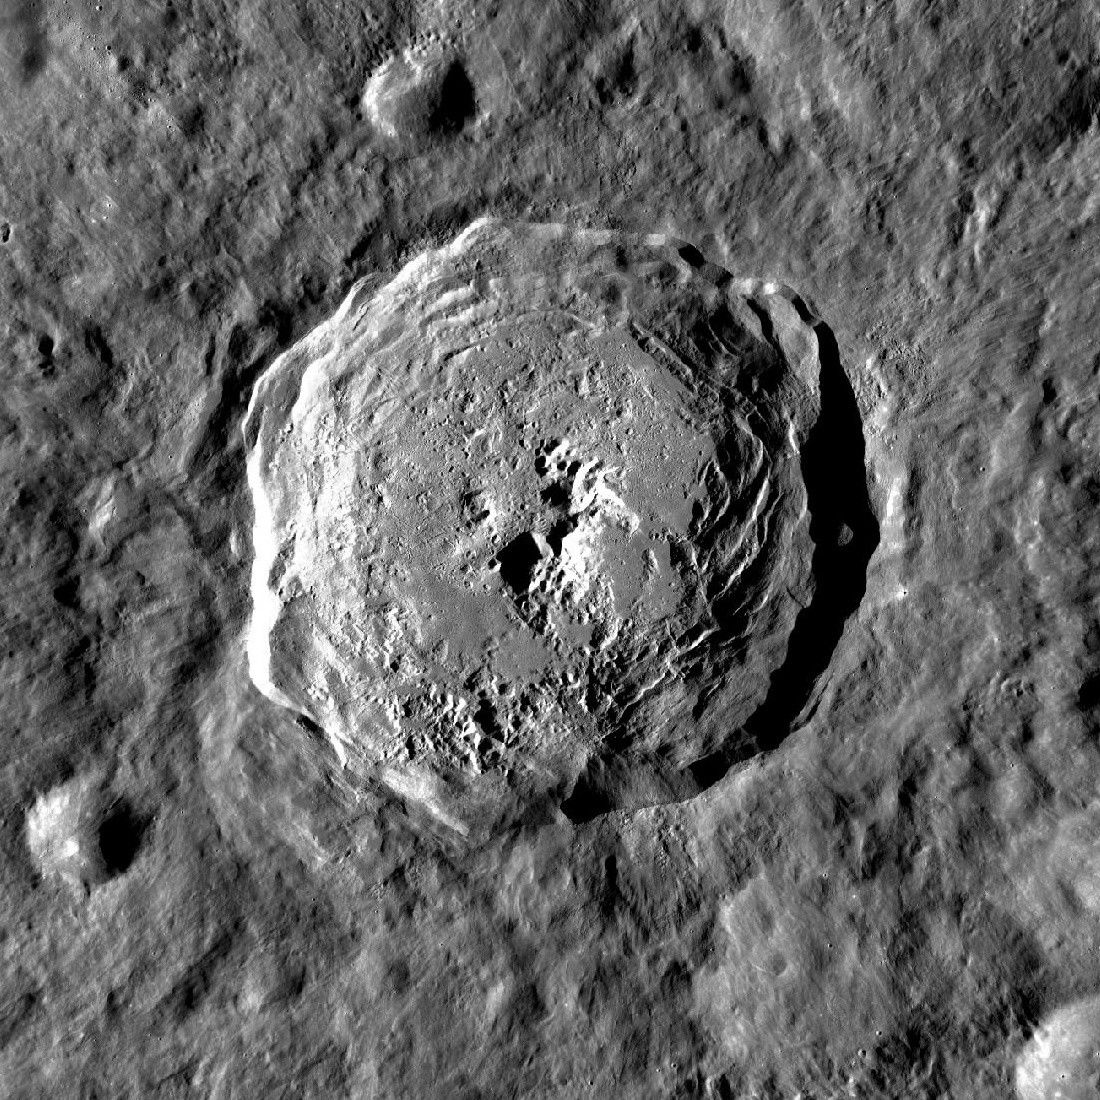 Jackson crater, an impact crater on the far side of the Moon. Credit: NASA/GSFC/Arizona State University